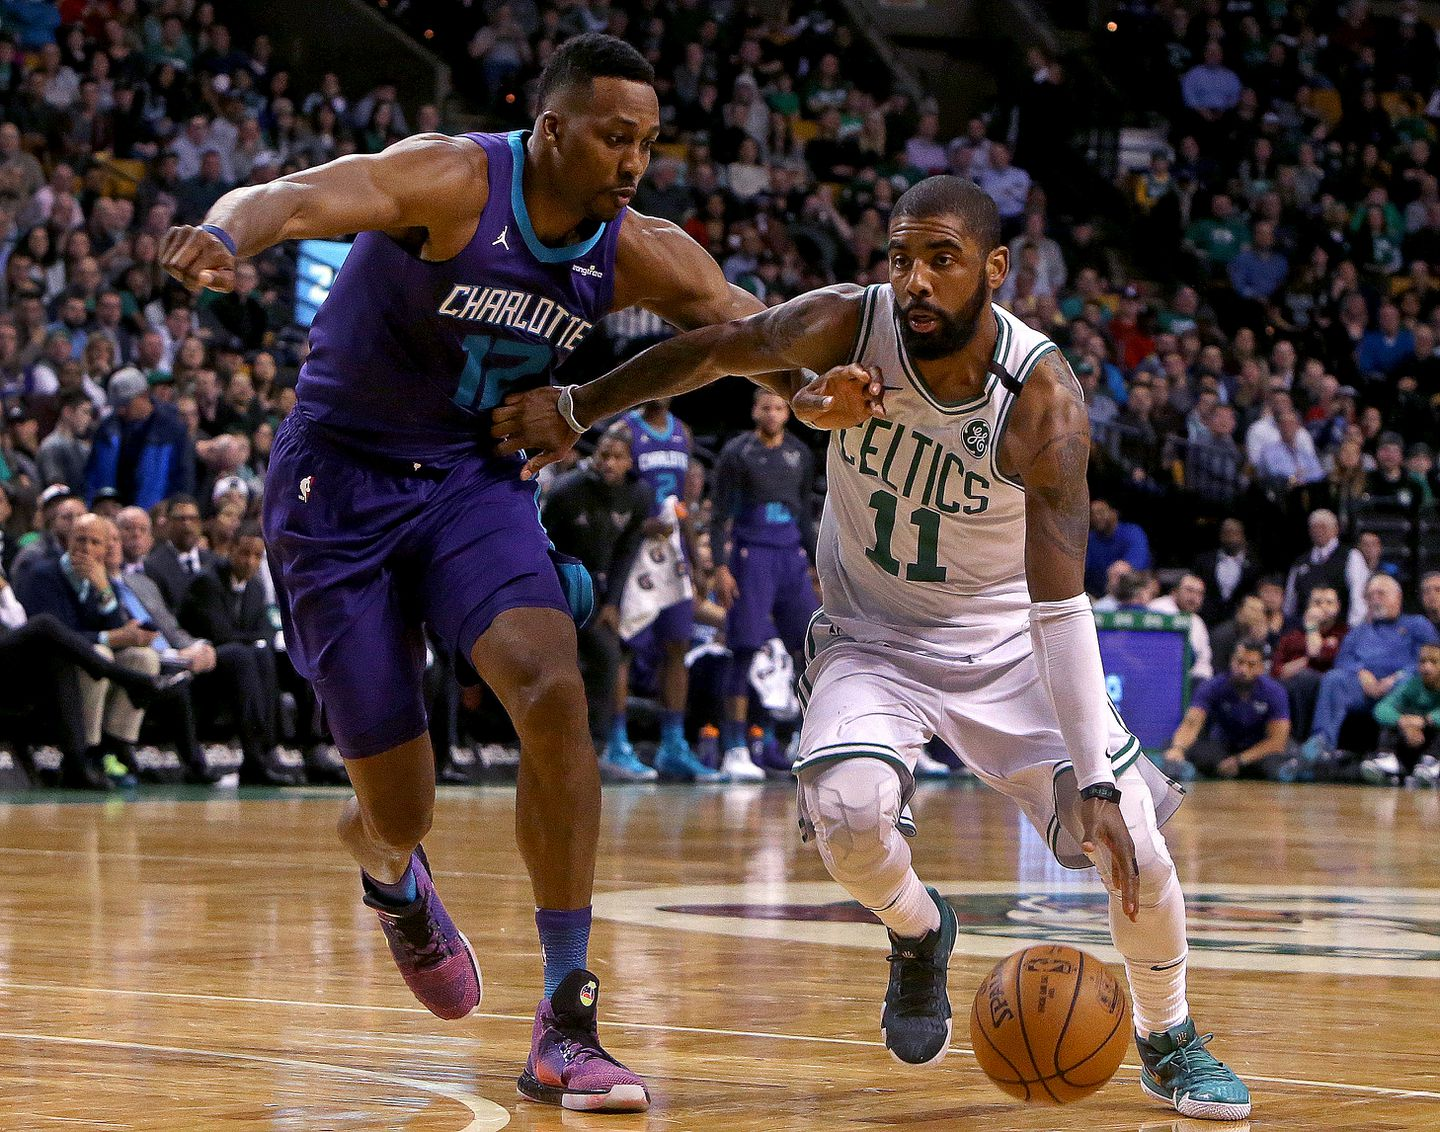 ccb193df1e4b Celtics guard Kyrie Irving (11) drives past Charlotte s Dwight Howard (12)  in